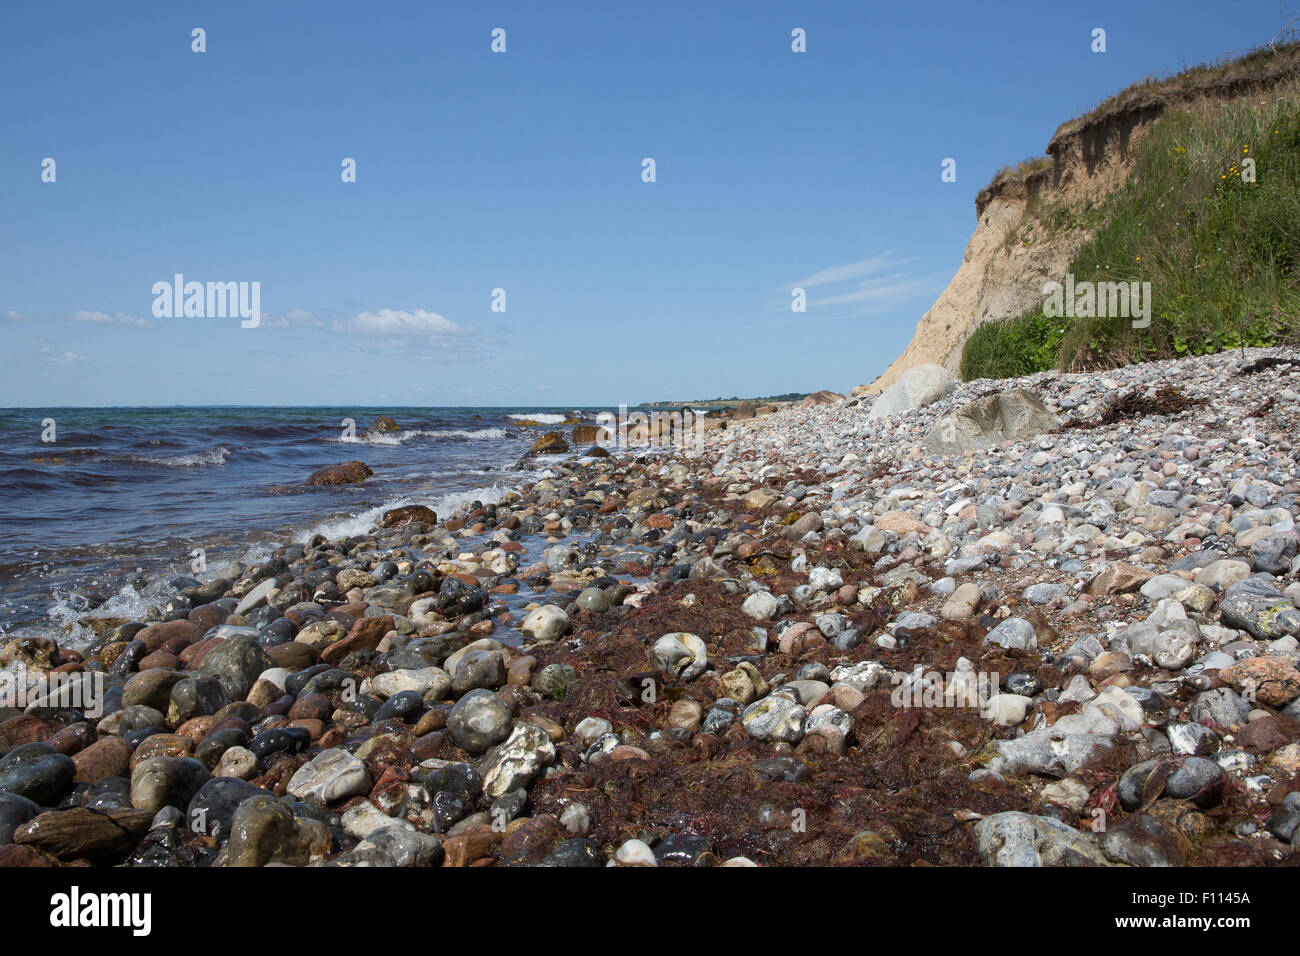 Seaweed, rocky beach, and moraine cliff at Voderup Klint at Aero, Denmark - Stock Image